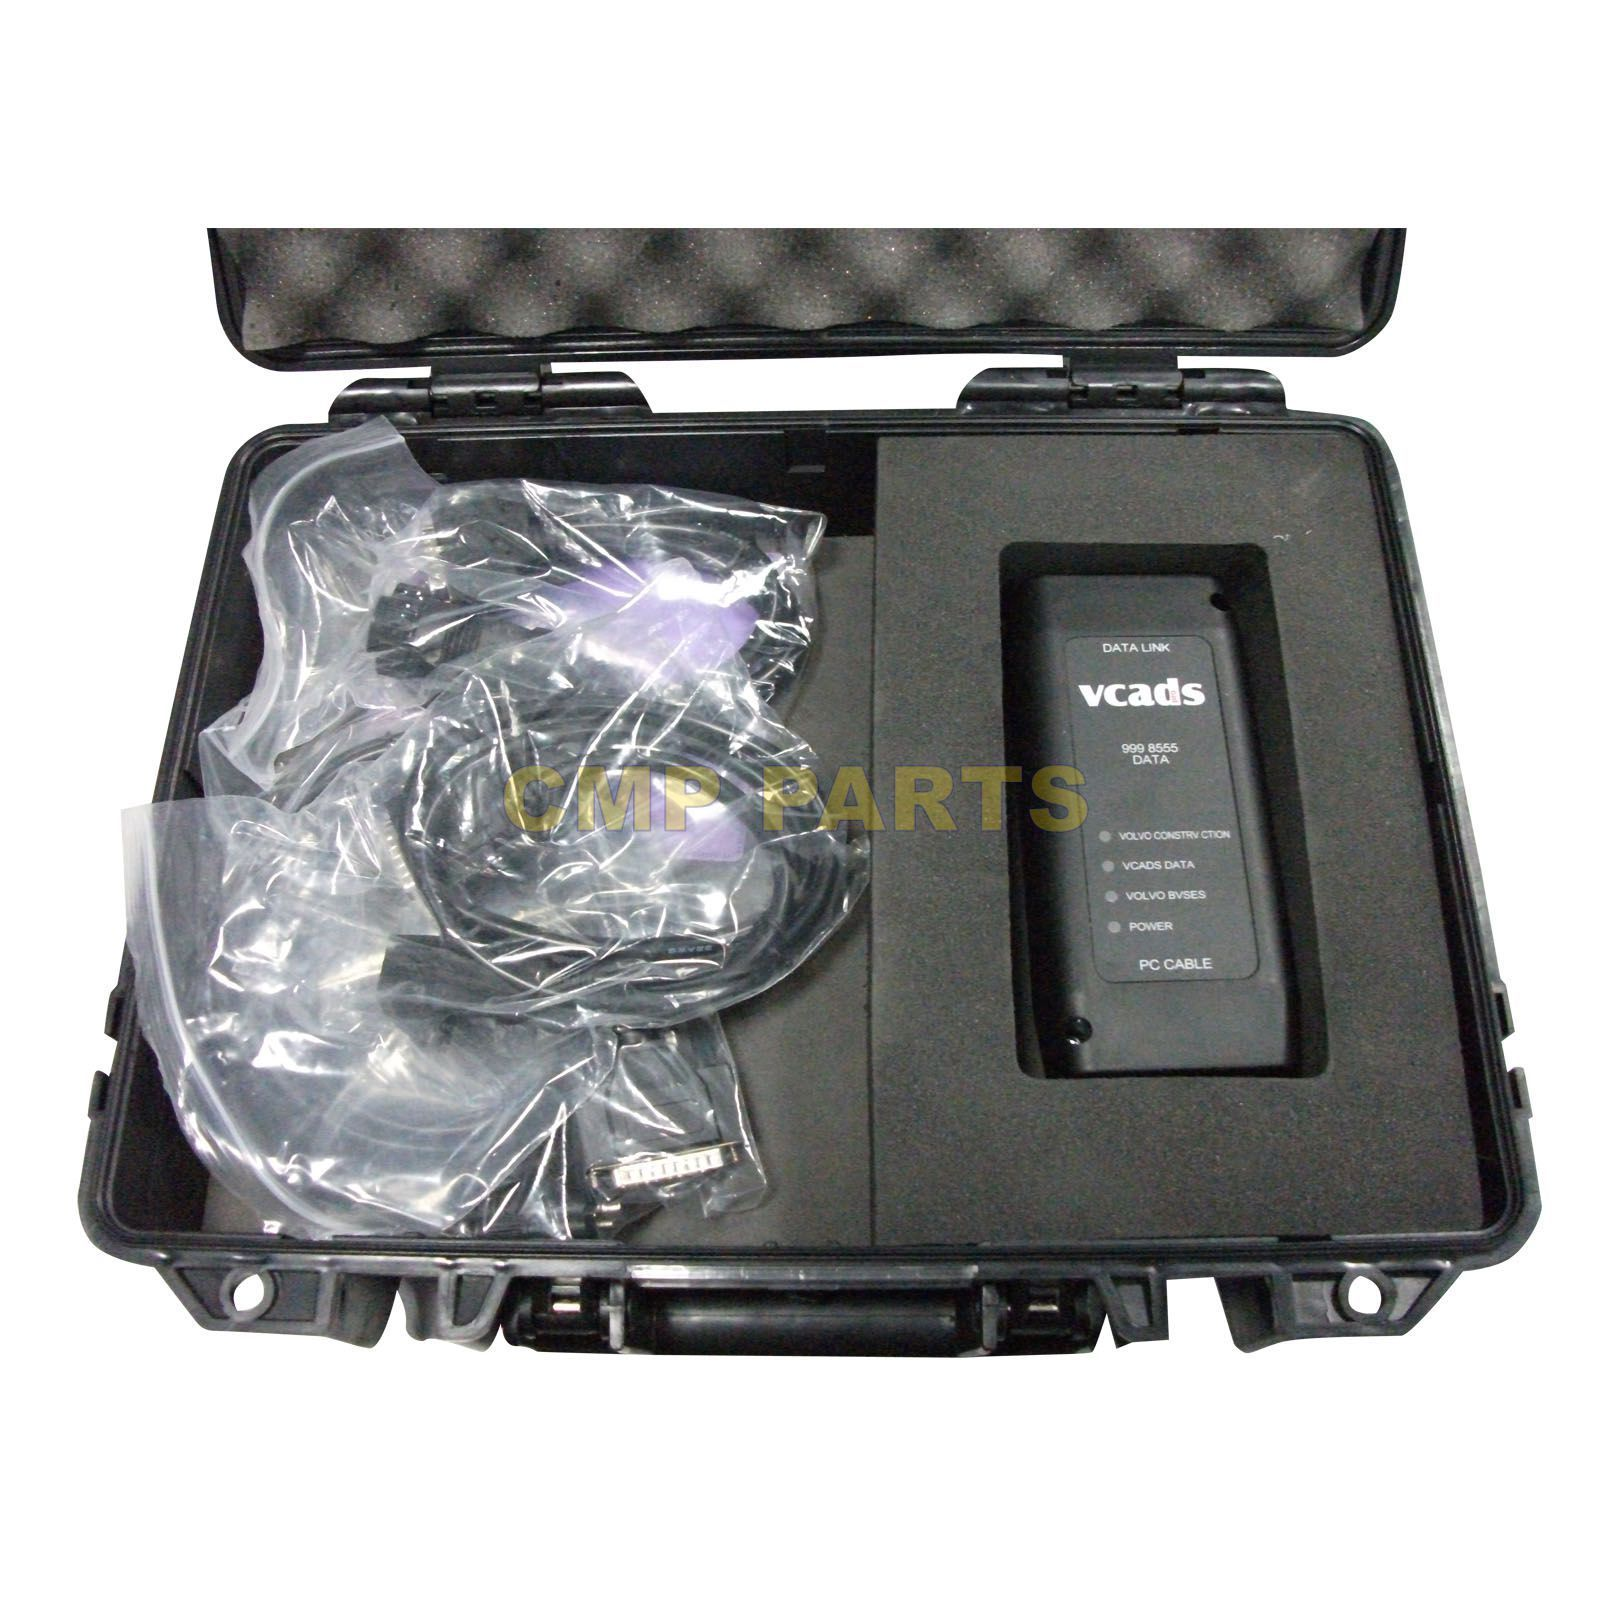 2ed0d1504edf Details about 9998555 Volvo excavator engine diagnostic tool scancer with  multiple language